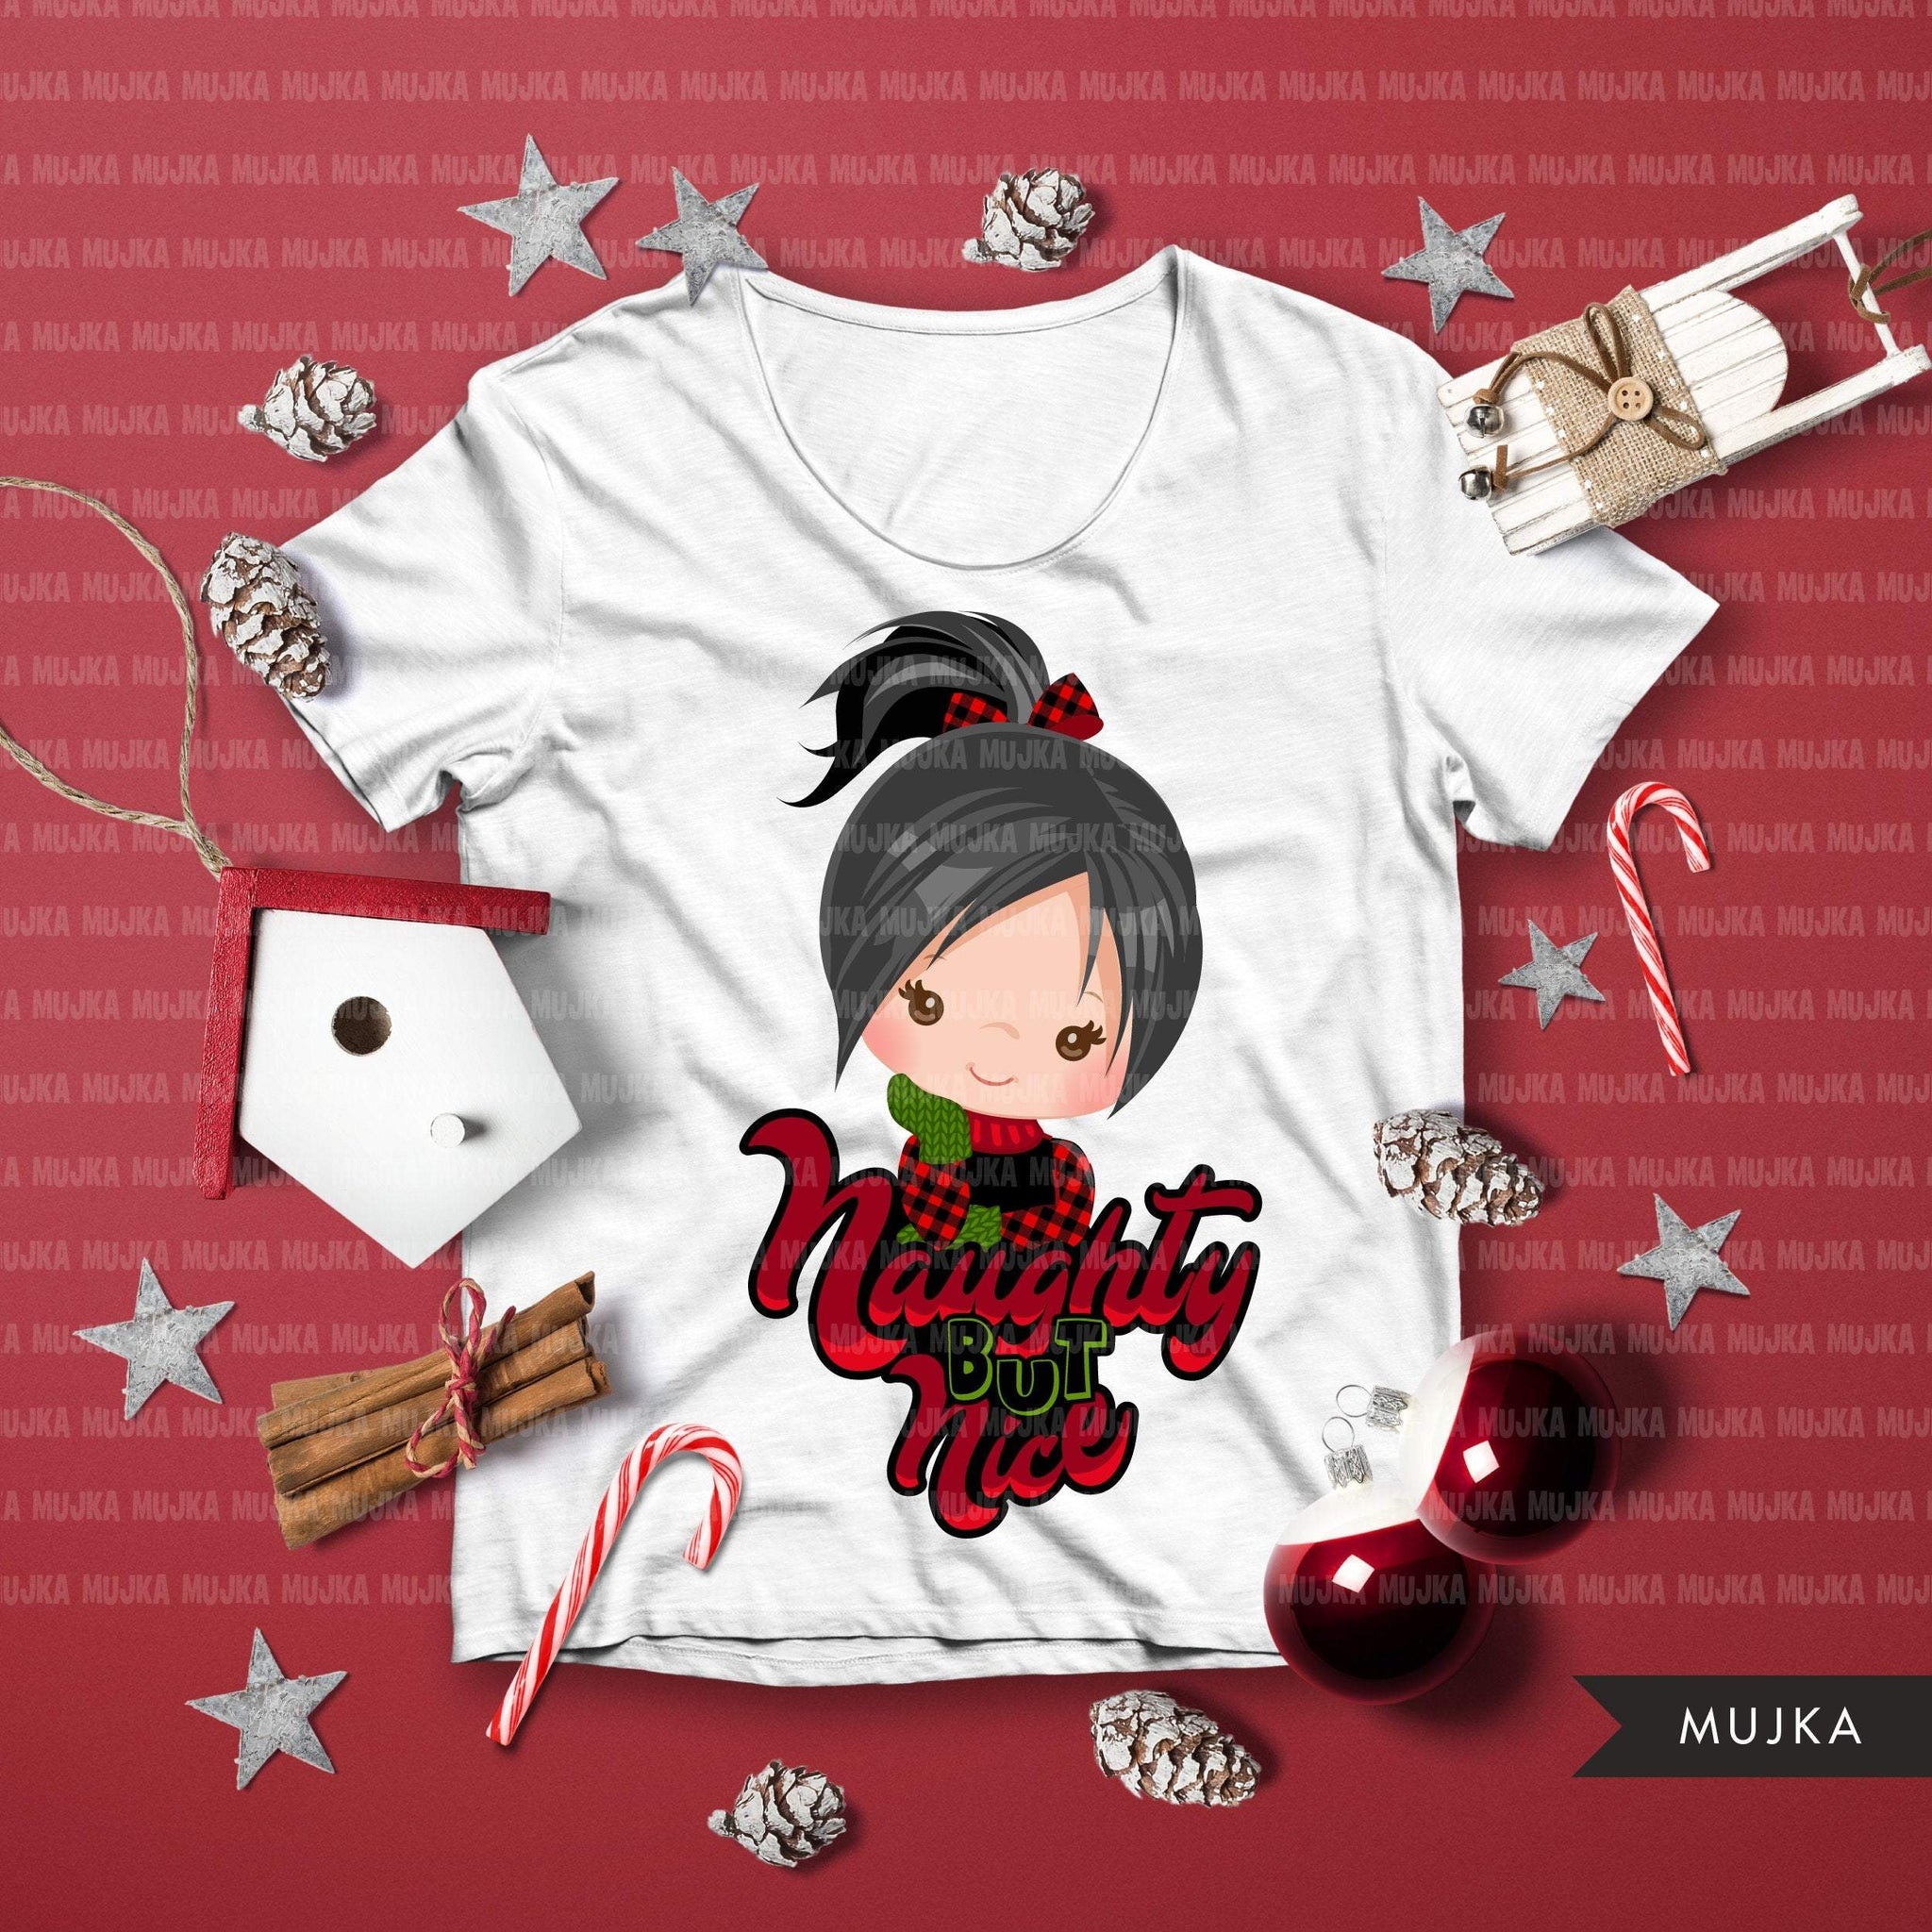 Christmas PNG digital, Naughty but Nice HTV sublimation image transfer clipart, t-shirt graphics brunette girls